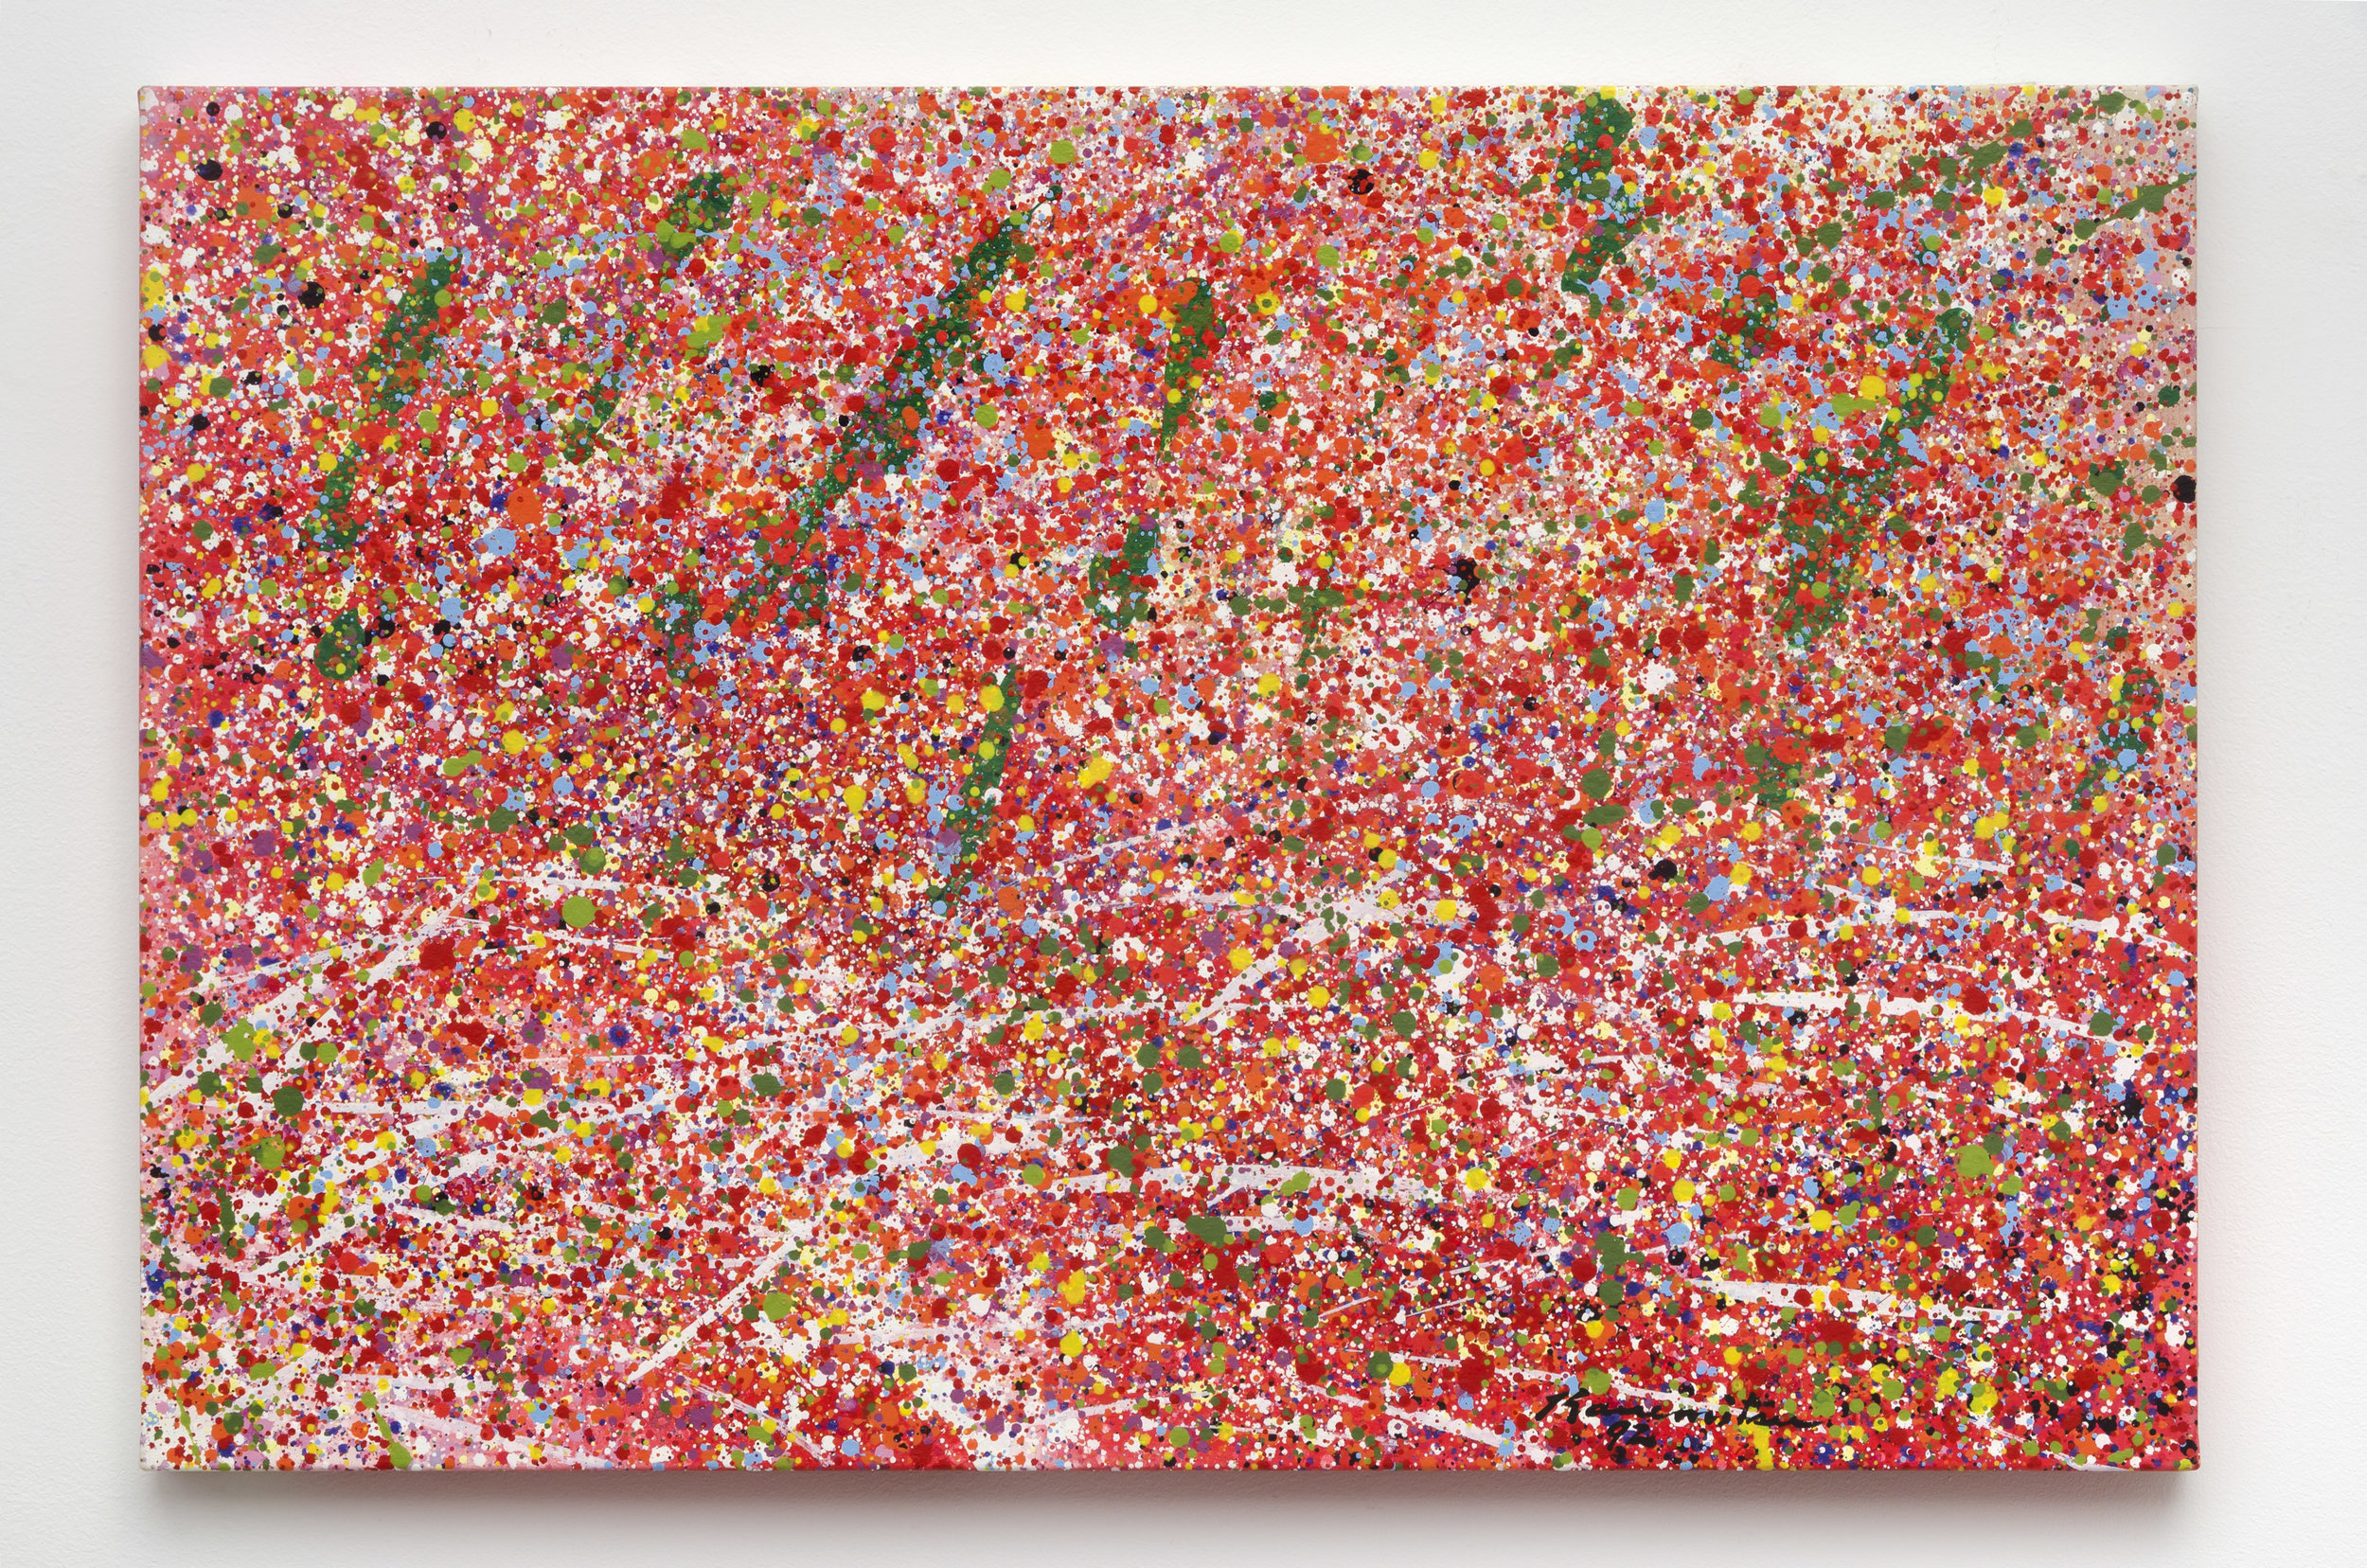 Untitled (K) , 1992 acrylic on canvas 24 x 36.5 inches; 61 x 92.7 centimeters